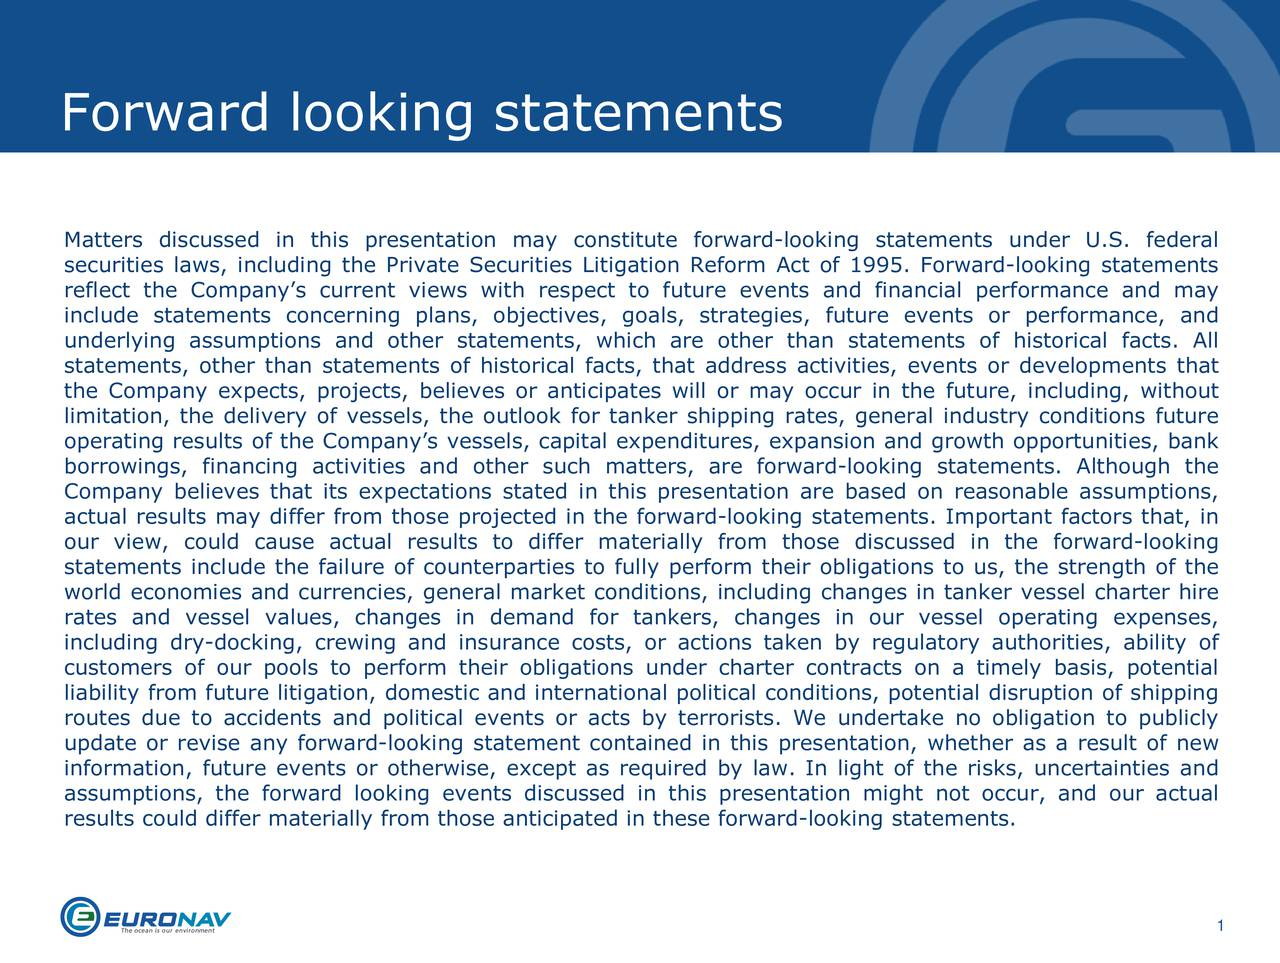 Matters discussed in this presentation may constitute forward-looking statements under U.S. federal securities laws, including the Private Securities Litigation Reform Act of 1995. Forward-looking statements reflect the Companys current views with respect to future events and financial performance and may include statements concerning plans, objectives, goals, strategies, future events or performance, and underlying assumptions and other statements, which are other than statements of historical facts. All statements, other than statements of historical facts, that address activities, events or developments that the Company expects, projects, believes or anticipates will or may occur in the future, including, without limitation, the delivery of vessels, the outlook for tanker shipping rates, general industry conditions future operating results of the Companys vessels, capital expenditures, expansion and growth opportunities, bank borrowings, financing activities and other such matters, are forward-looking statements. Although the Company believes that its expectations stated in this presentation are based on reasonable assumptions, actual results may differ from those projected in the forward-looking statements. Important factors that, in our view, could cause actual results to differ materially from those discussed in the forward-looking statements include the failure of counterparties to fully perform their obligations to us, the strength of the world economies and currencies, general market conditions, including changes in tanker vessel charter hire rates and vessel values, changes in demand for tankers, changes in our vessel operating expenses, including dry-docking, crewing and insurance costs, or actions taken by regulatory authorities, ability of customers of our pools to perform their obligations under charter contracts on a timely basis, potential liability from future litigation, domestic and international political conditions, potential disruption of shipp